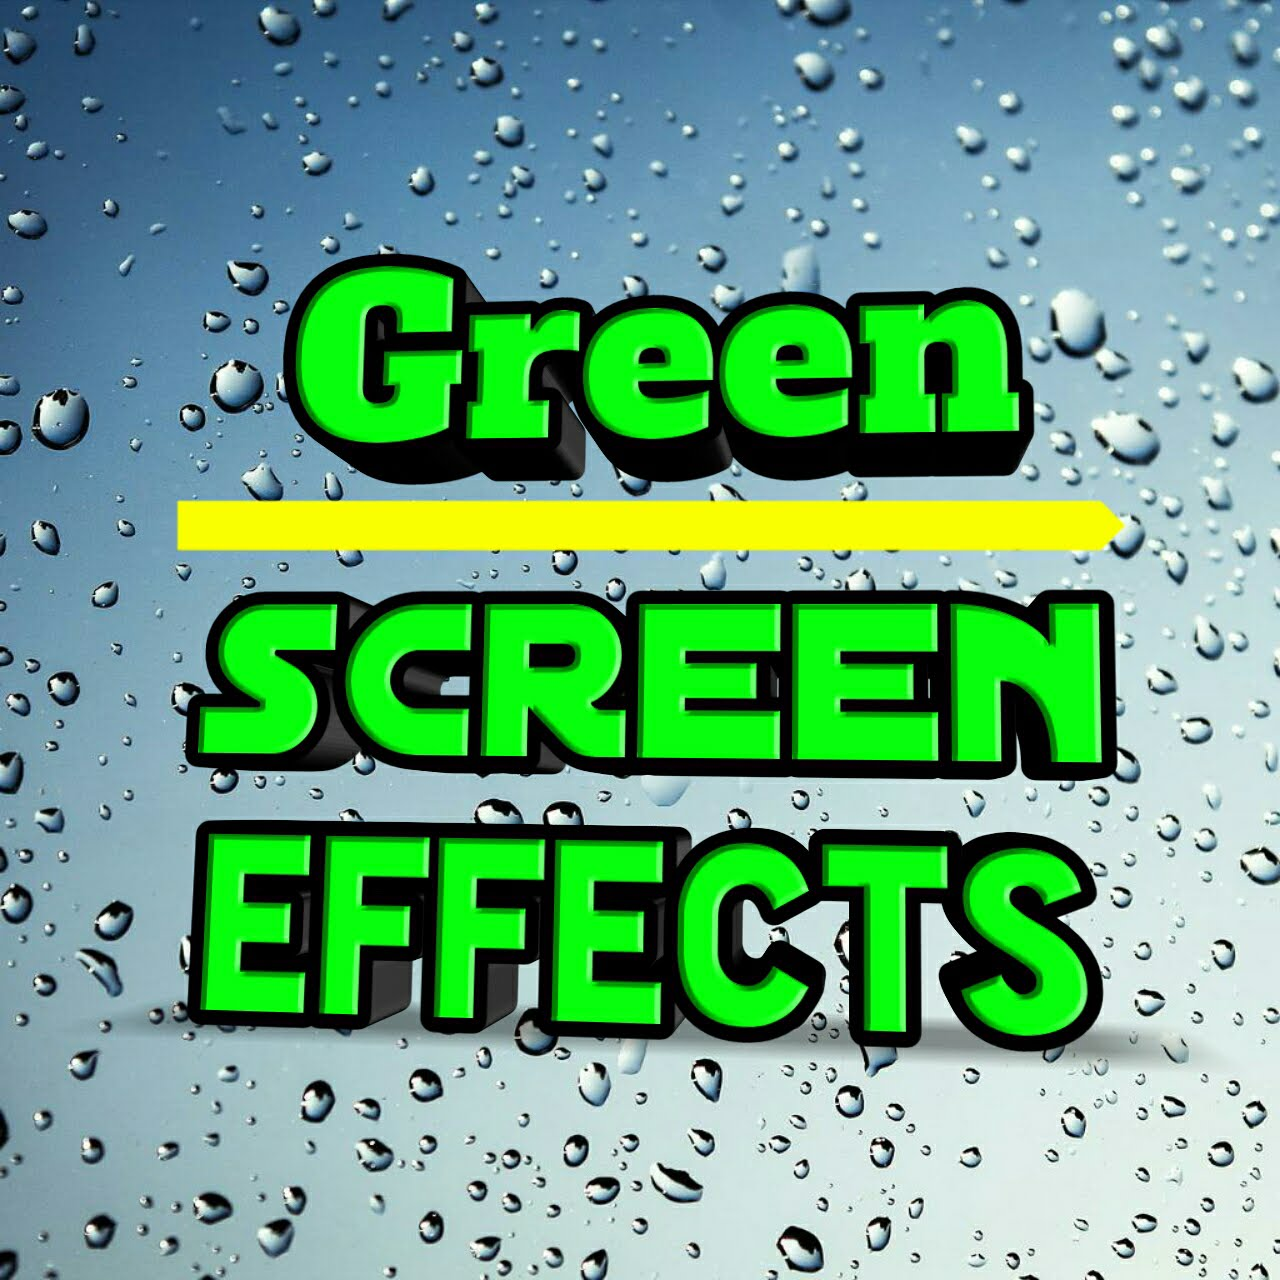 Download all Green Screen effects For Free - Green Screen Effects